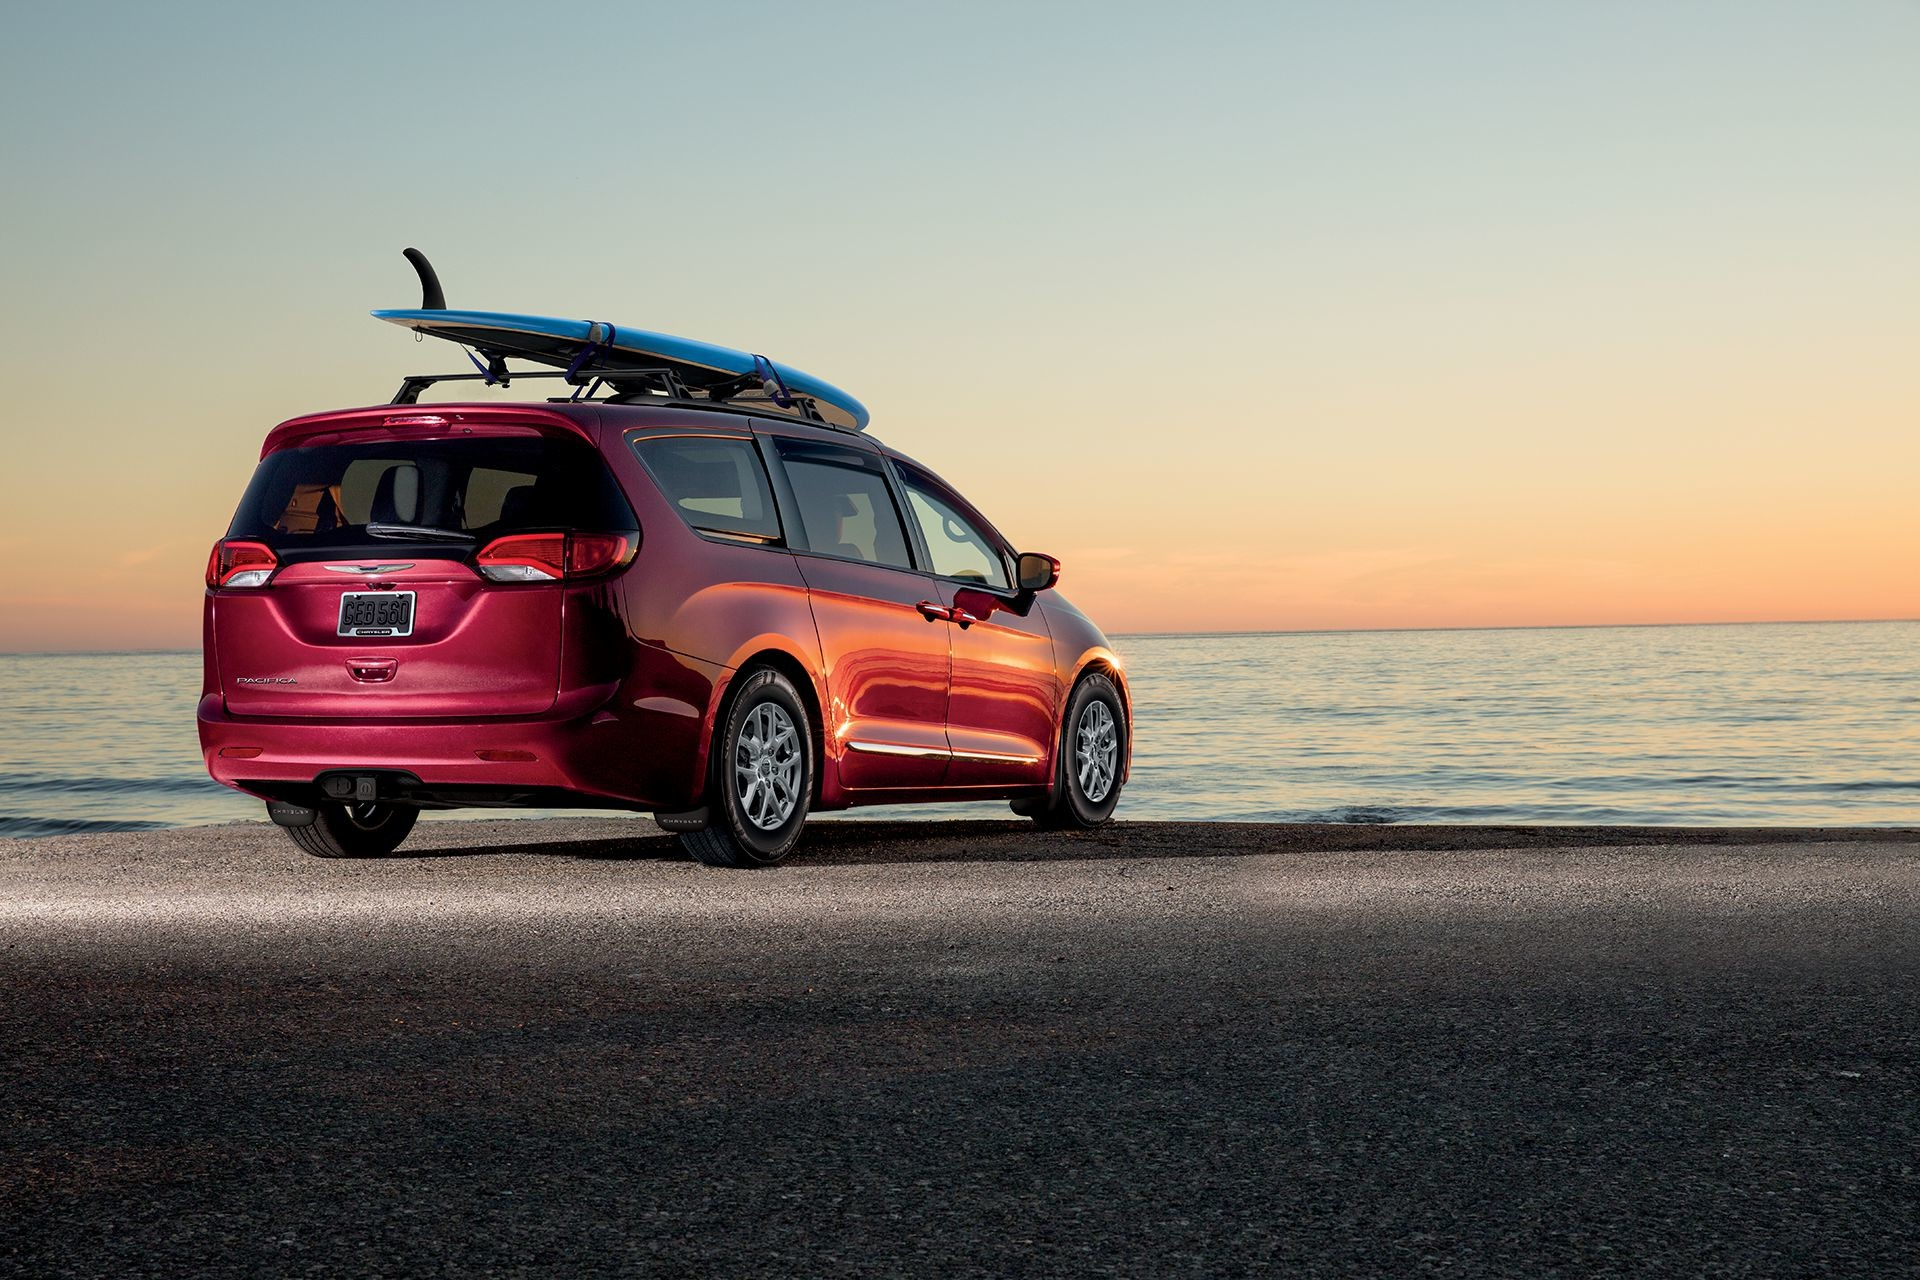 2018 Chrysler Pacifica Exterior Beach Lifestyle